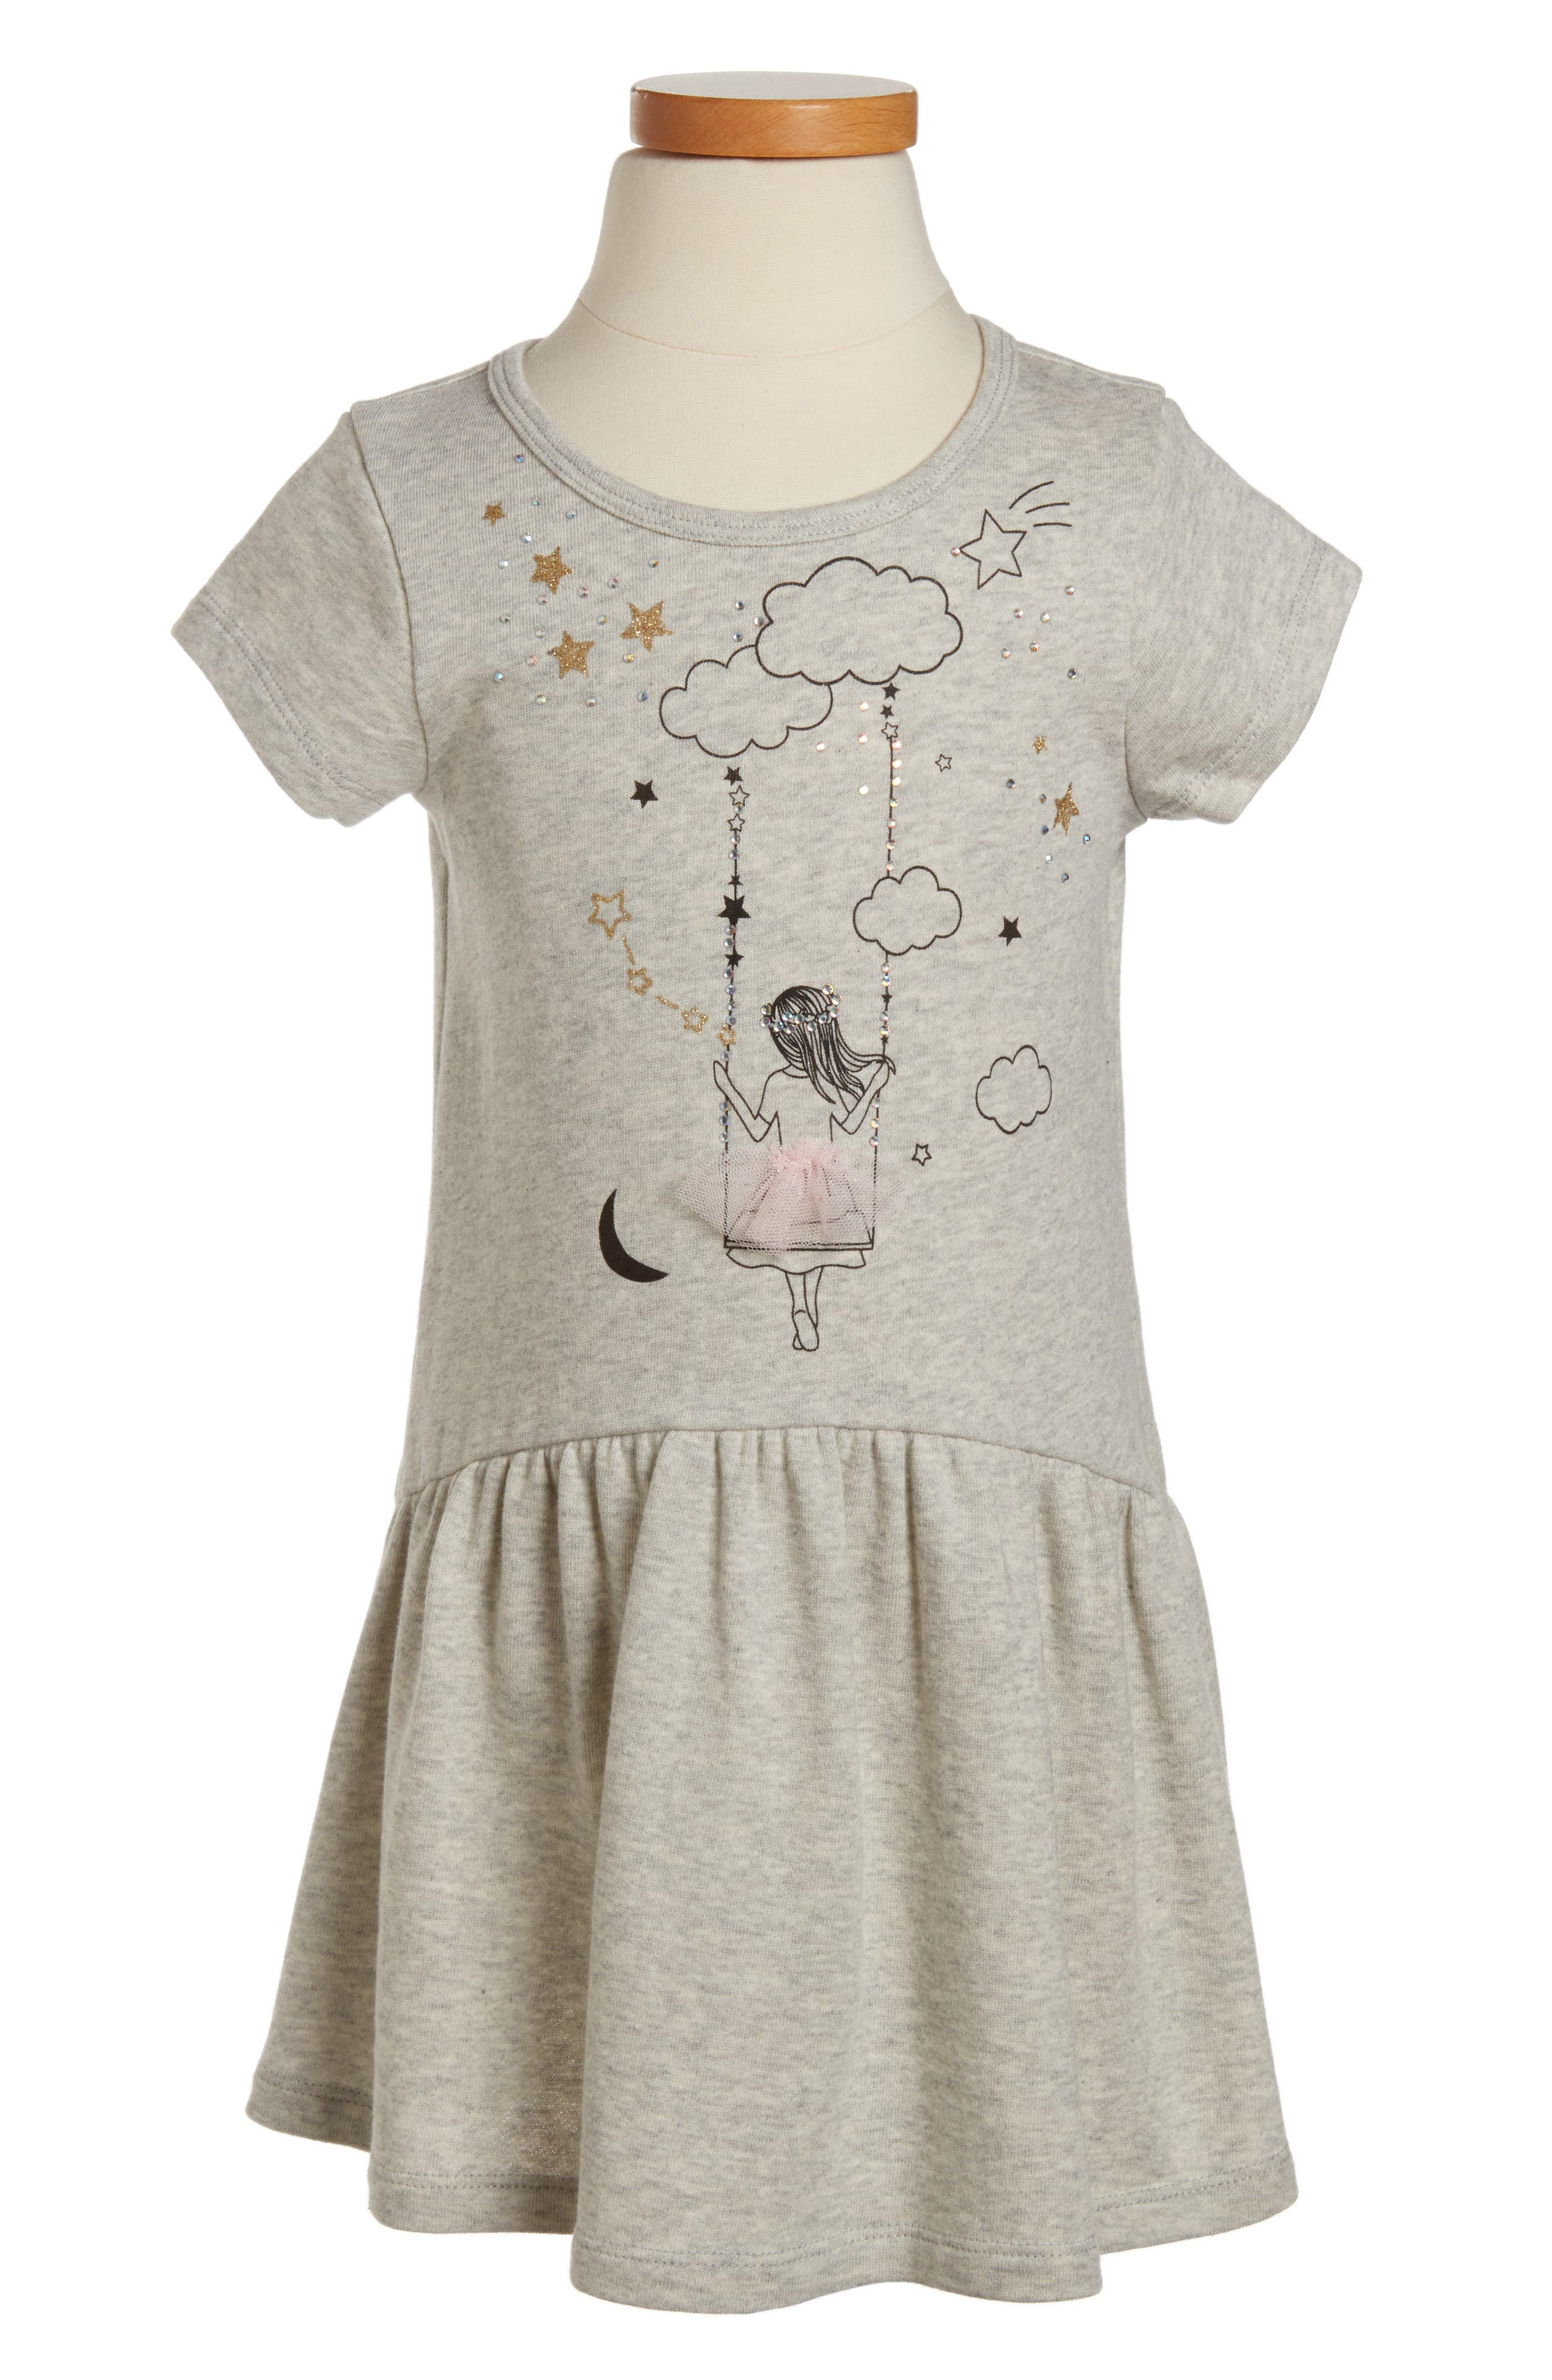 Main Image - Truly Me Girl On the Swing Knit Dress (Toddler Girls & Little Girls)